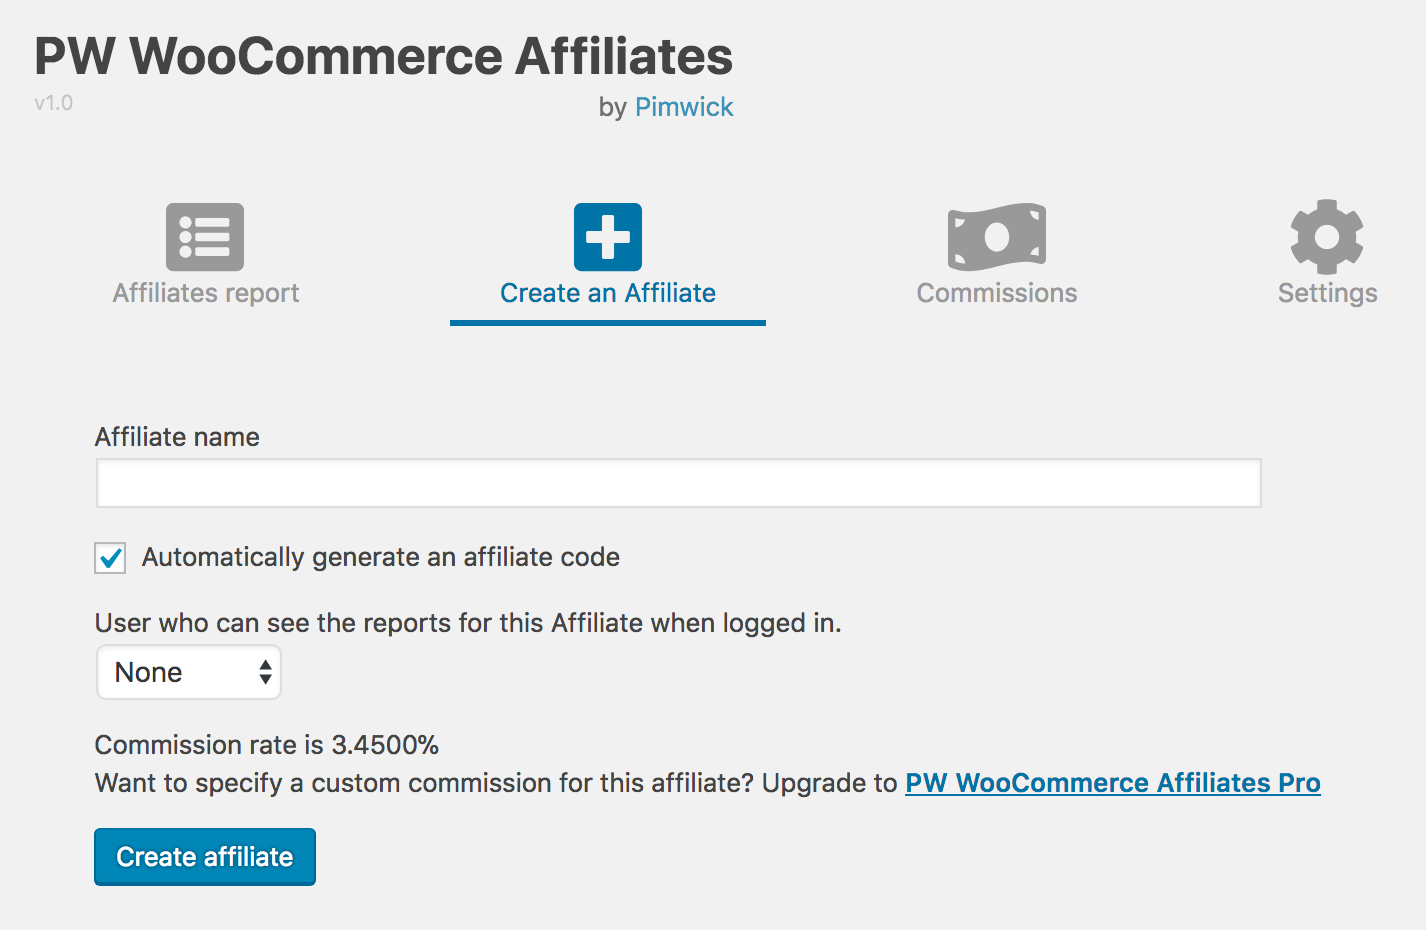 Creating an affiliate